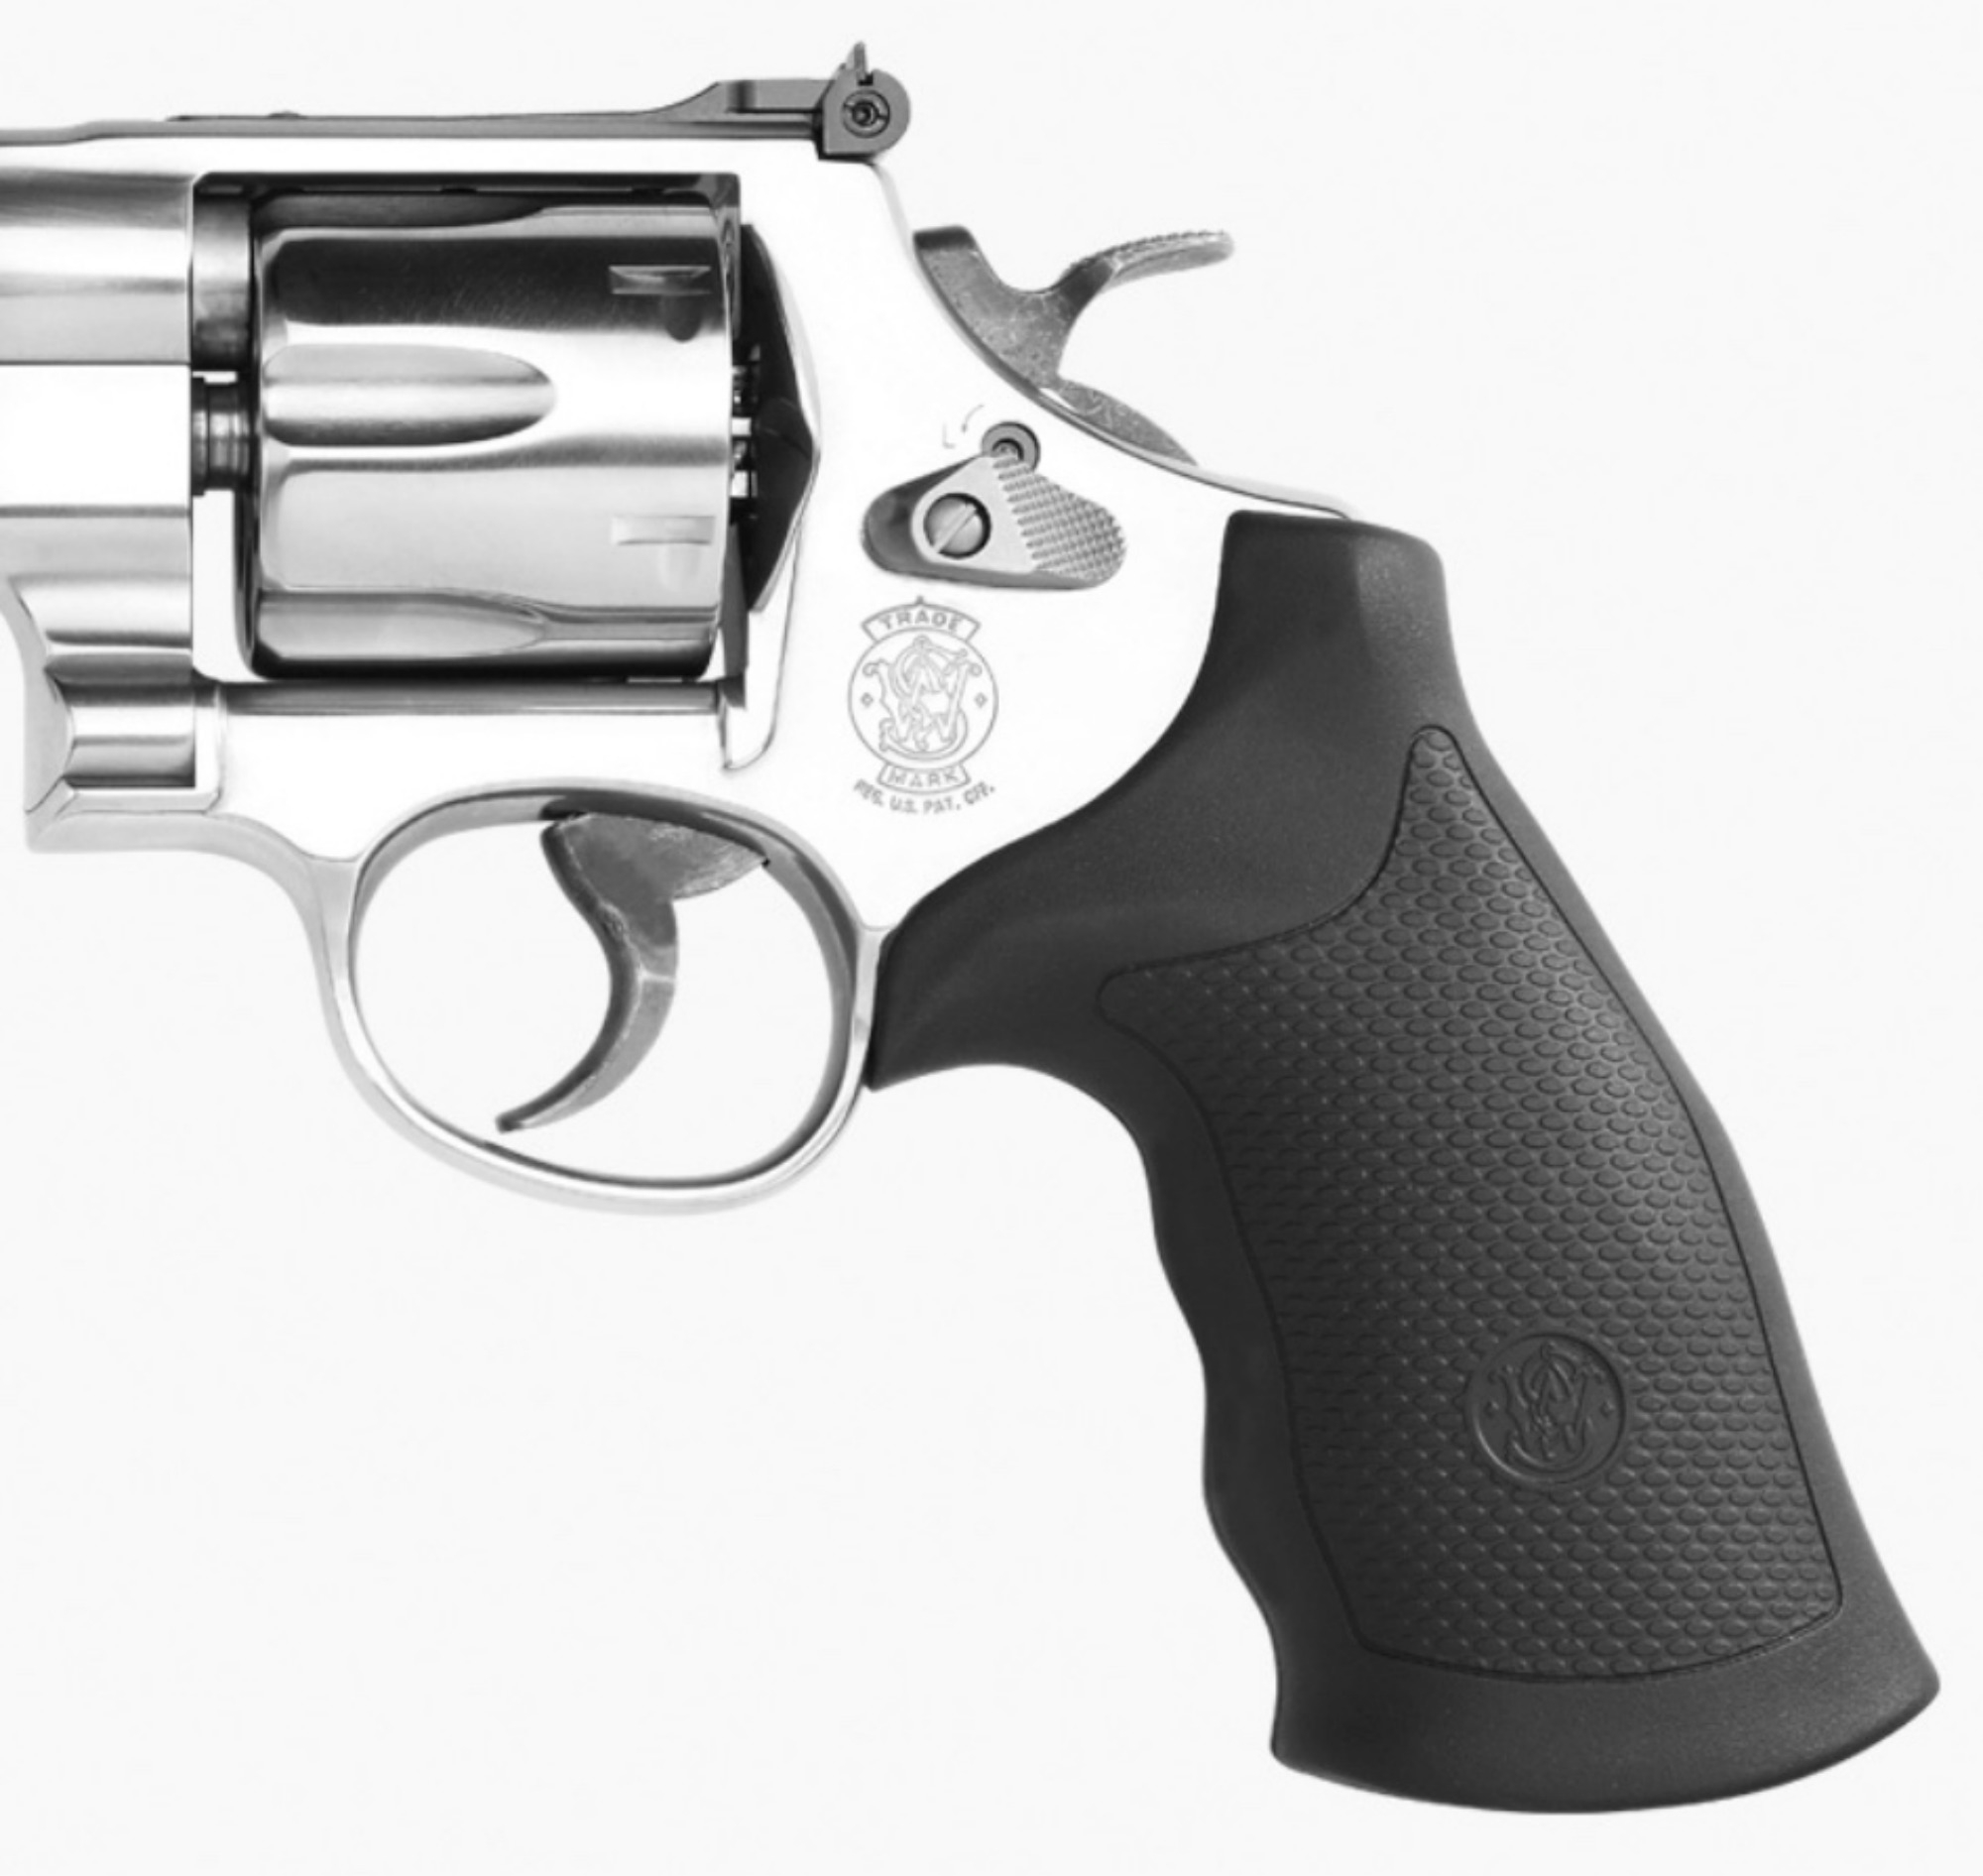 The finger groove grips of the Smith & Wesson Model 610 revolver